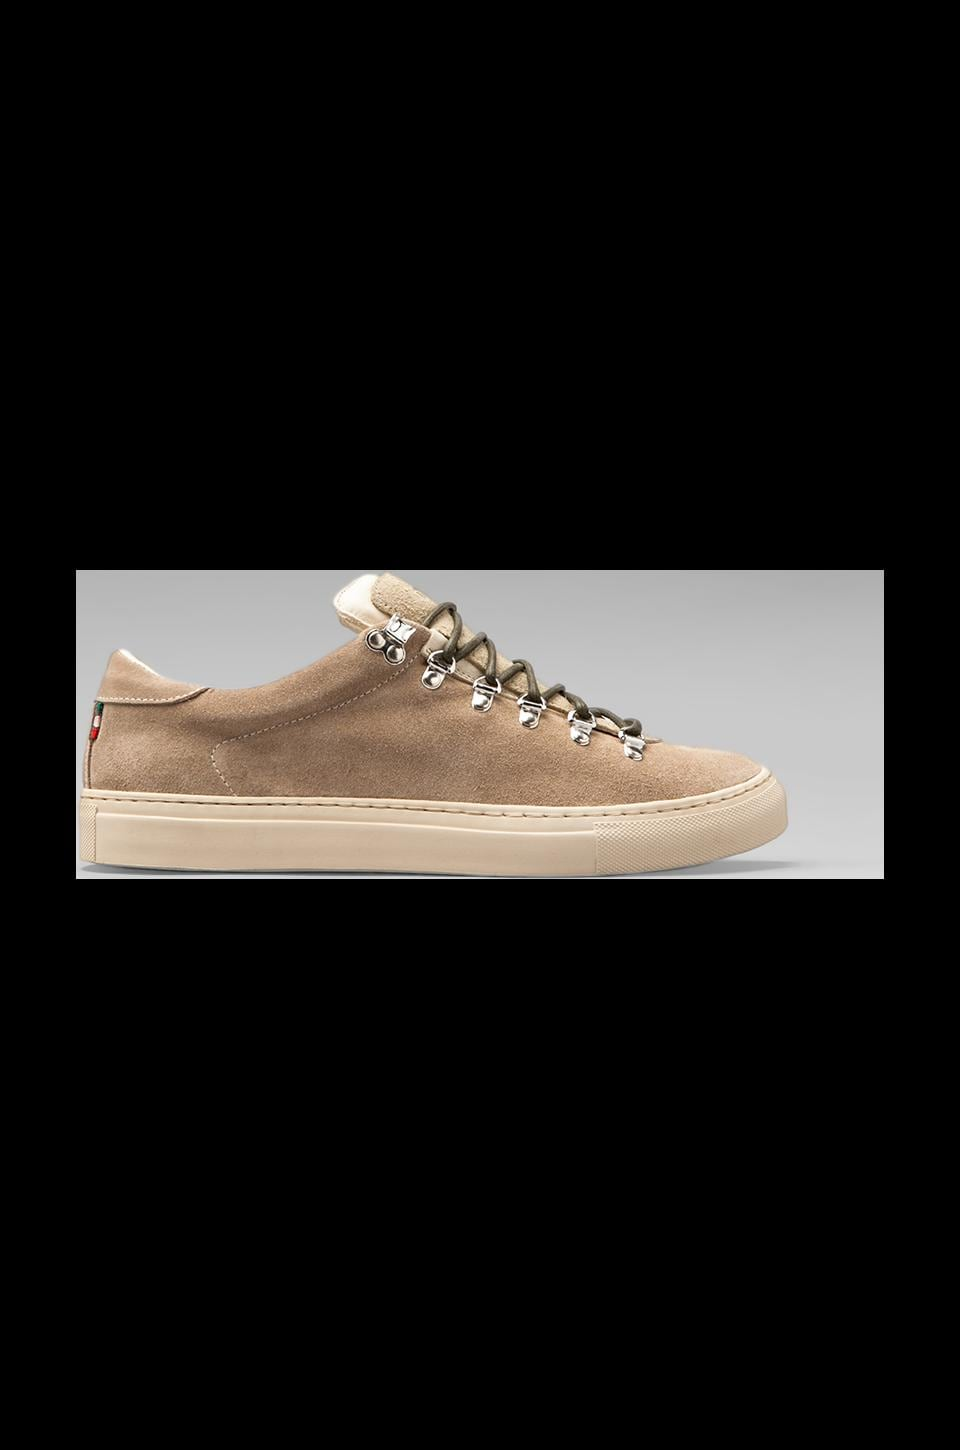 Diemme Marostica Low Sneaker in Mouton